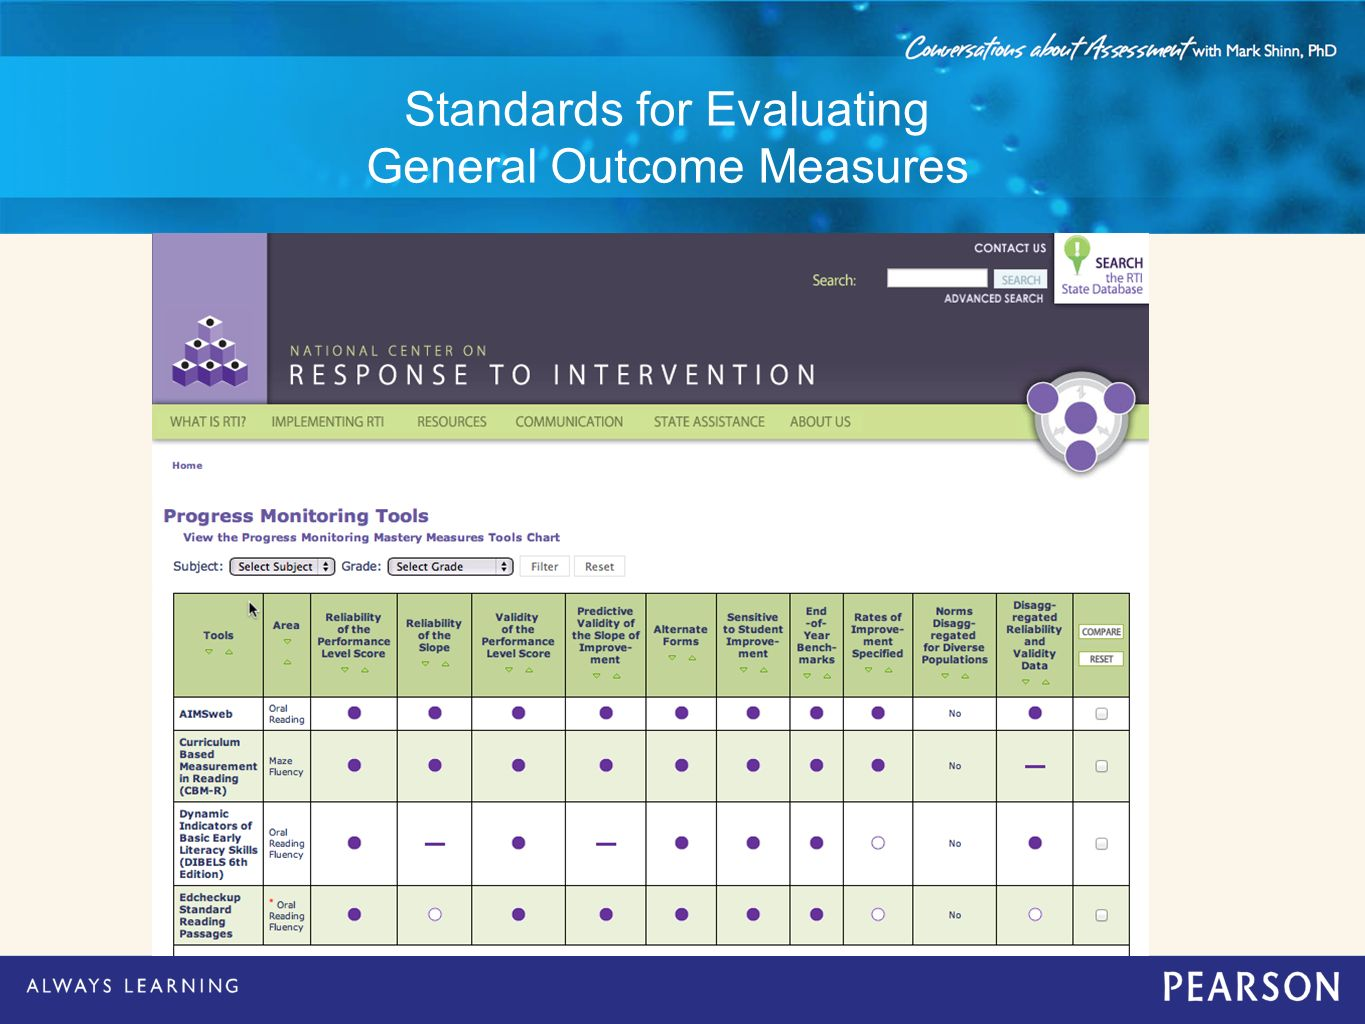 Standards for Evaluating General Outcome Measures